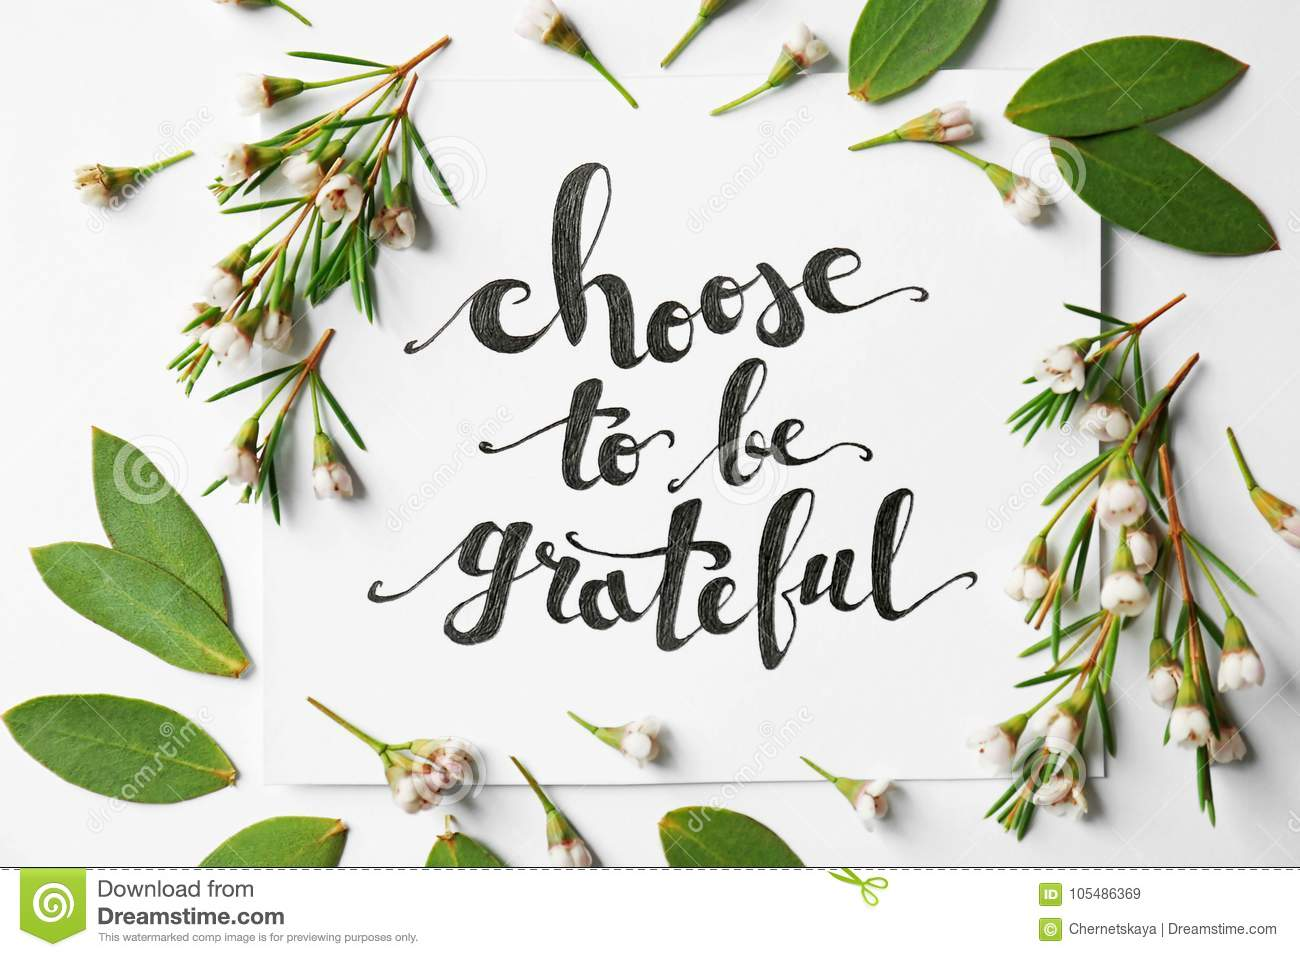 Quote `Choose to be grateful` written on paper with leaves and flowers on white background